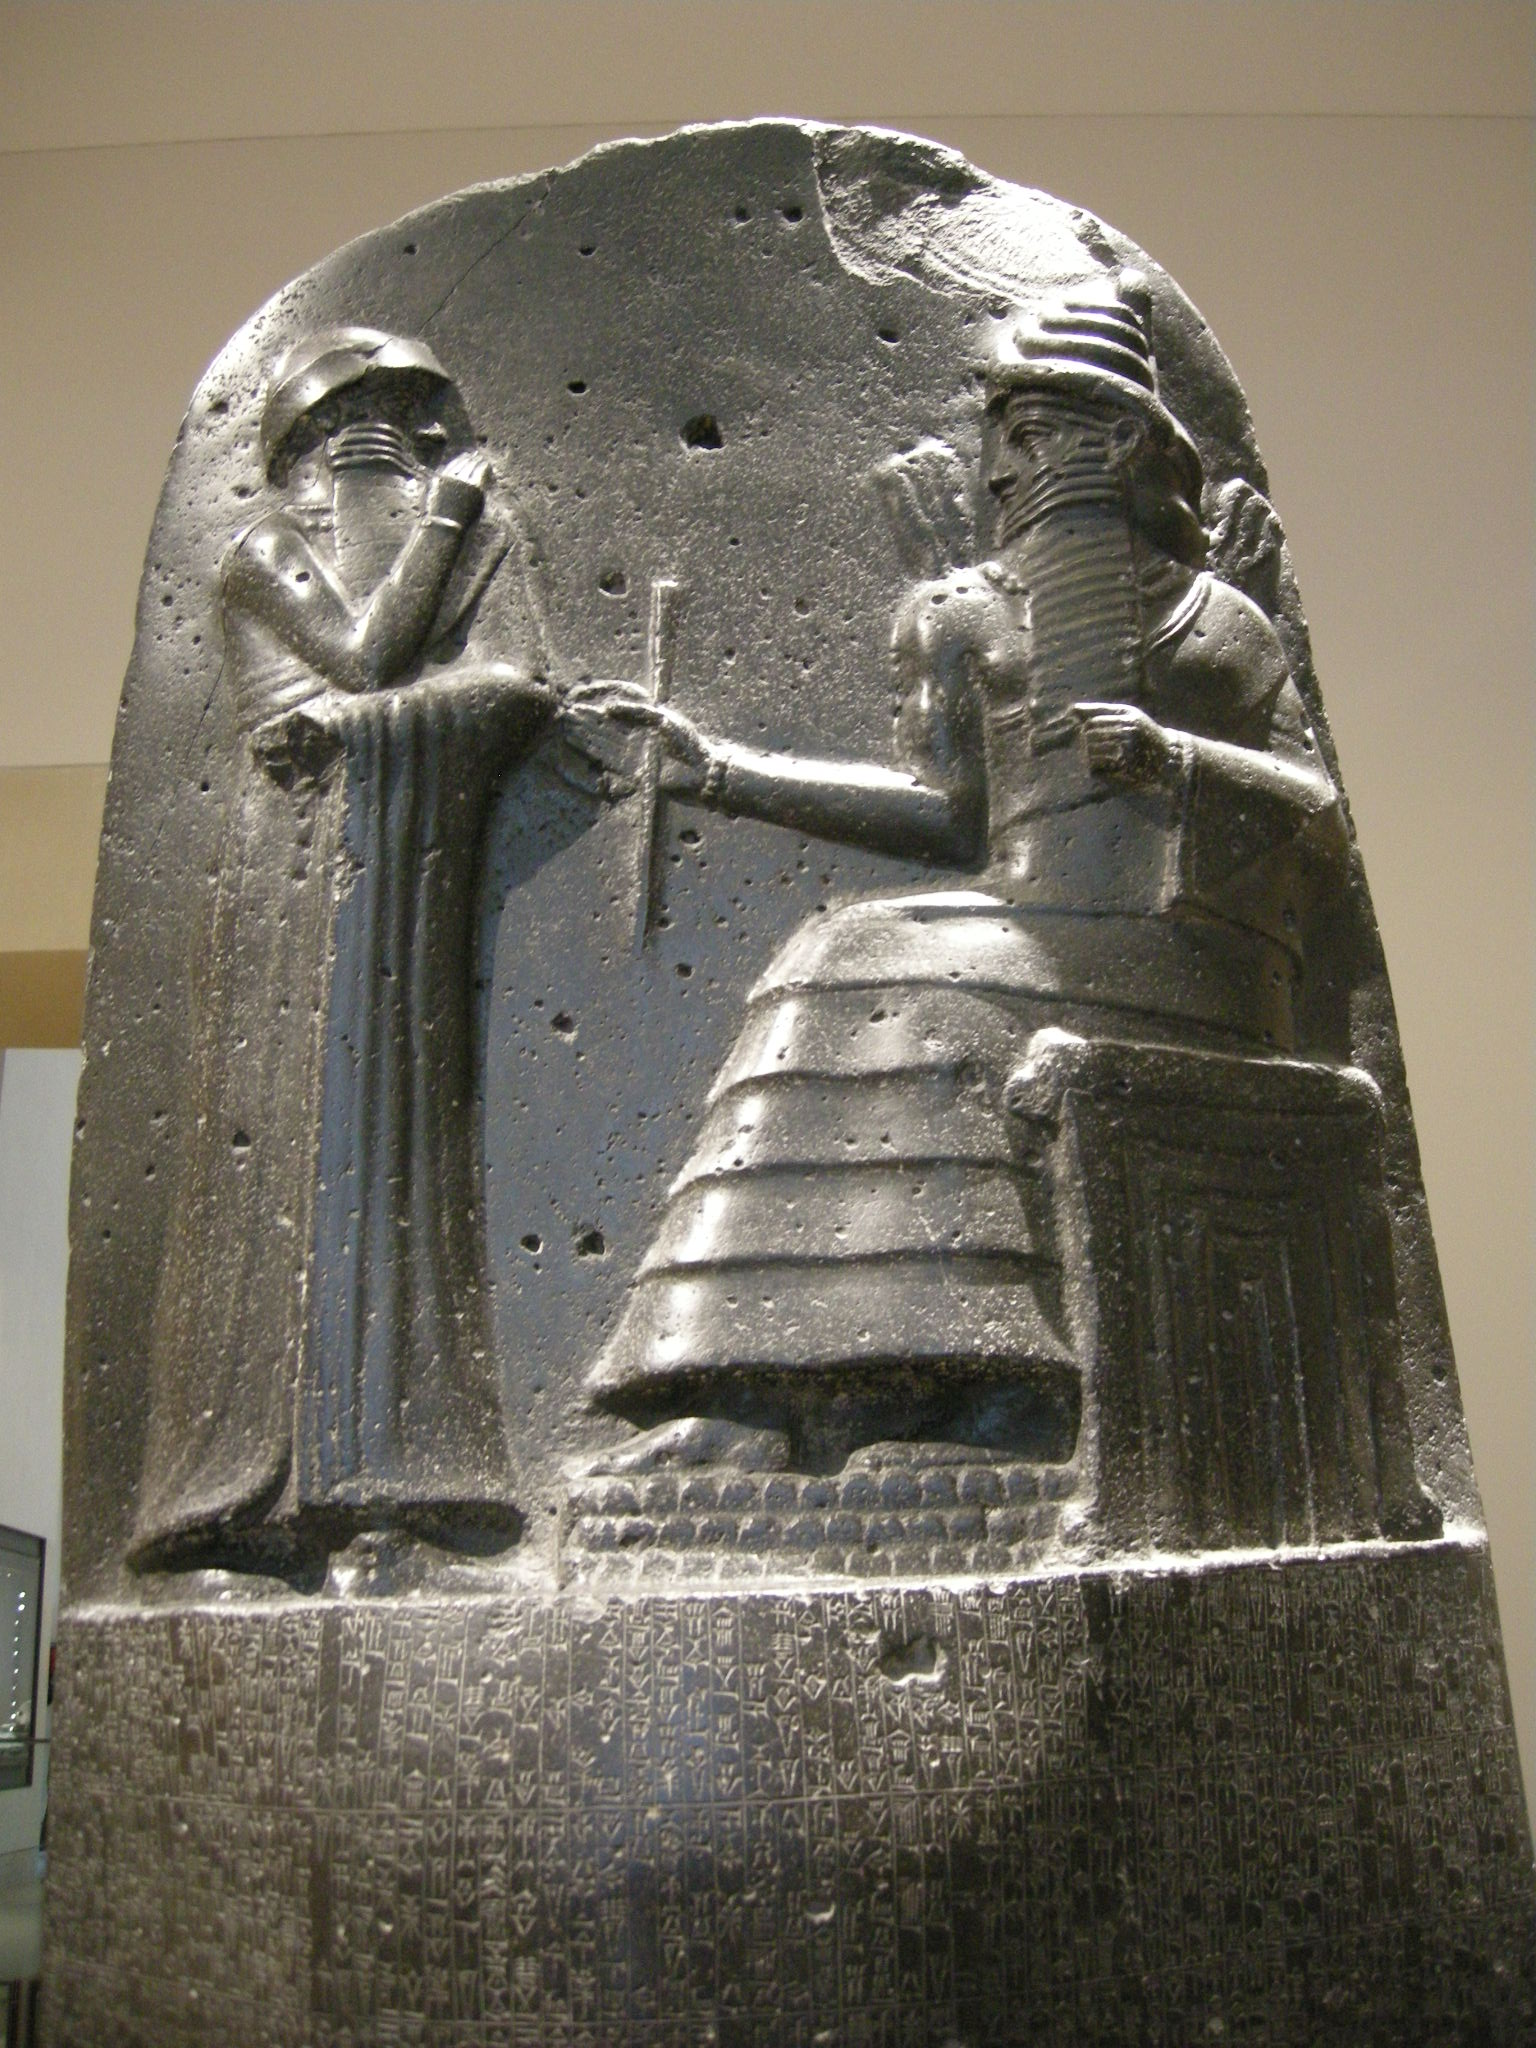 https://upload.wikimedia.org/wikipedia/commons/b/b4/Codice_di_hammurabi_03.JPG